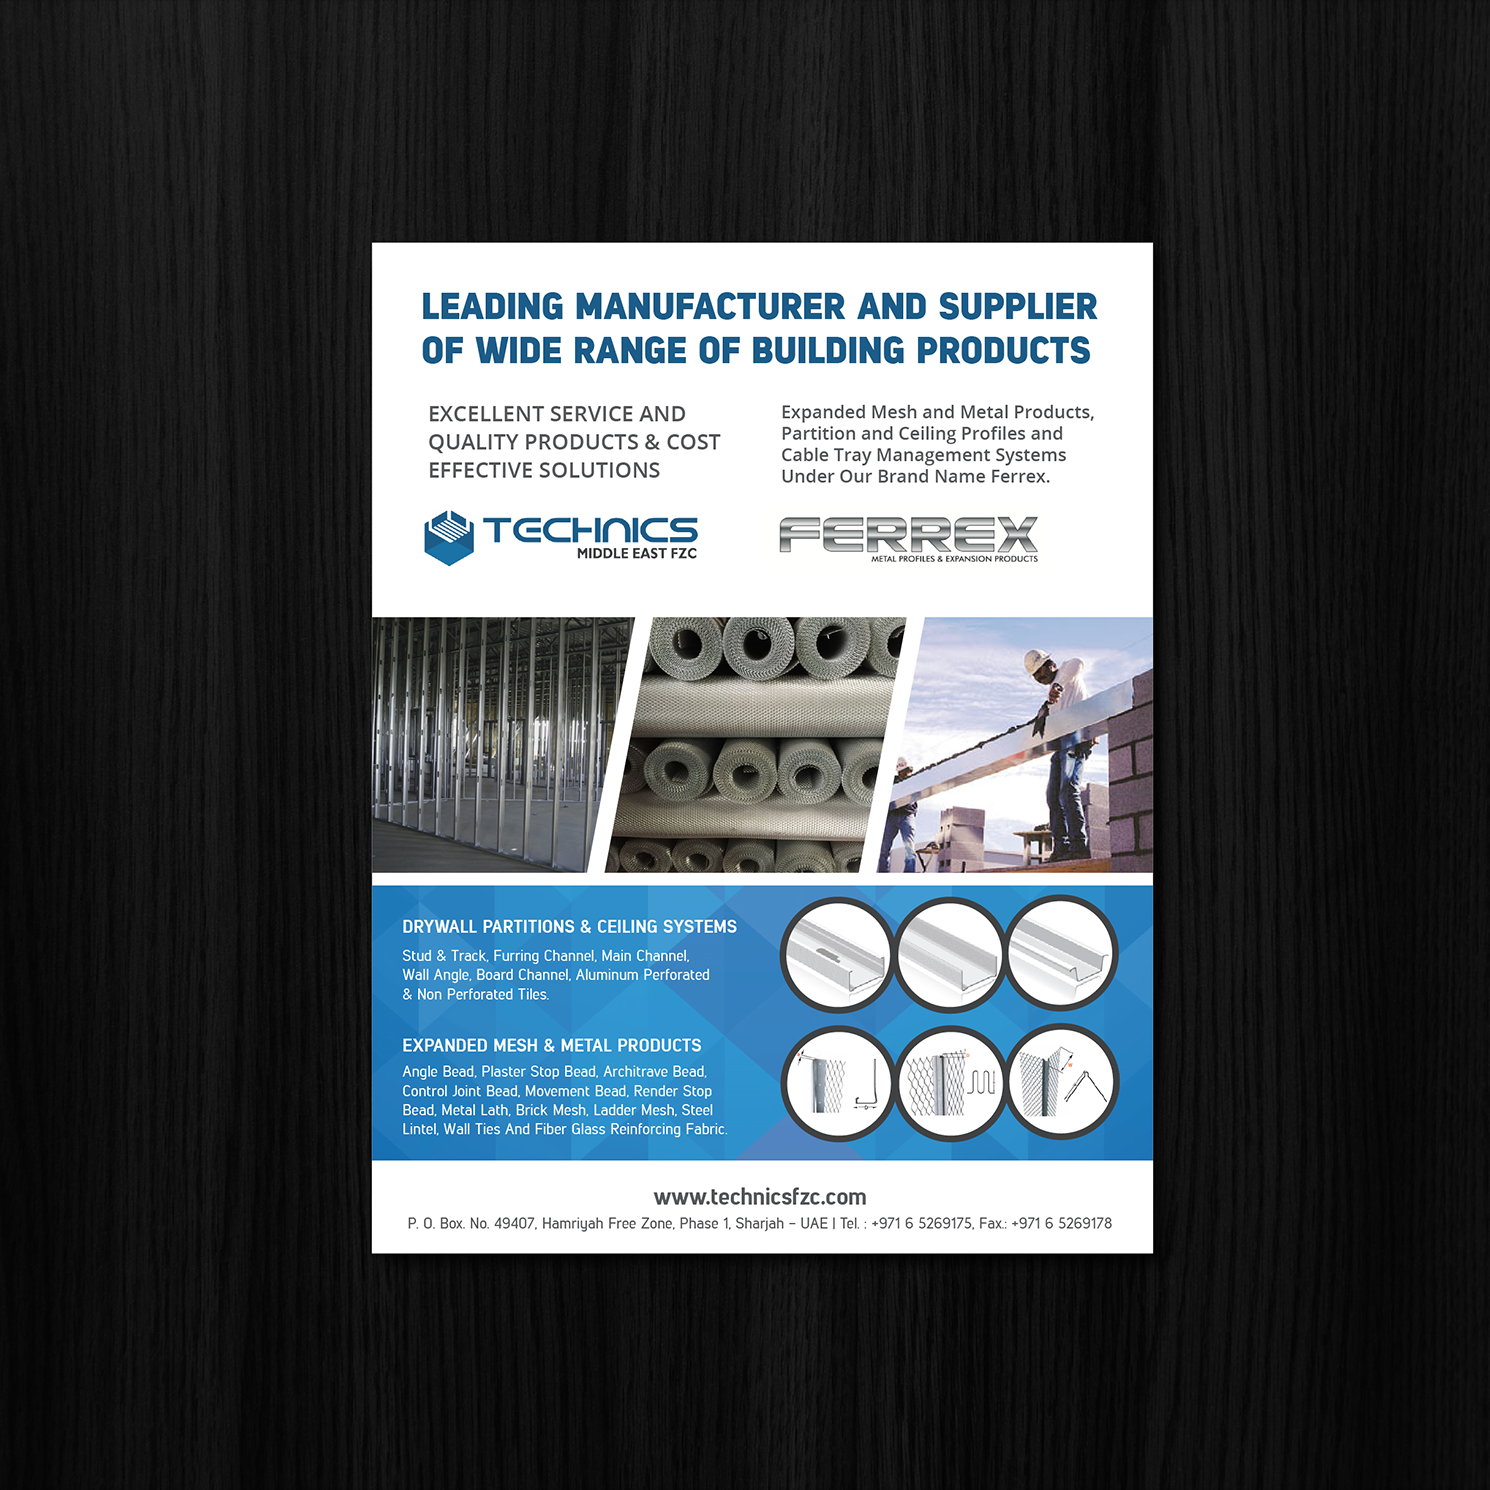 Serious, Modern, Metal Fabrication Newspaper Ad Design for a